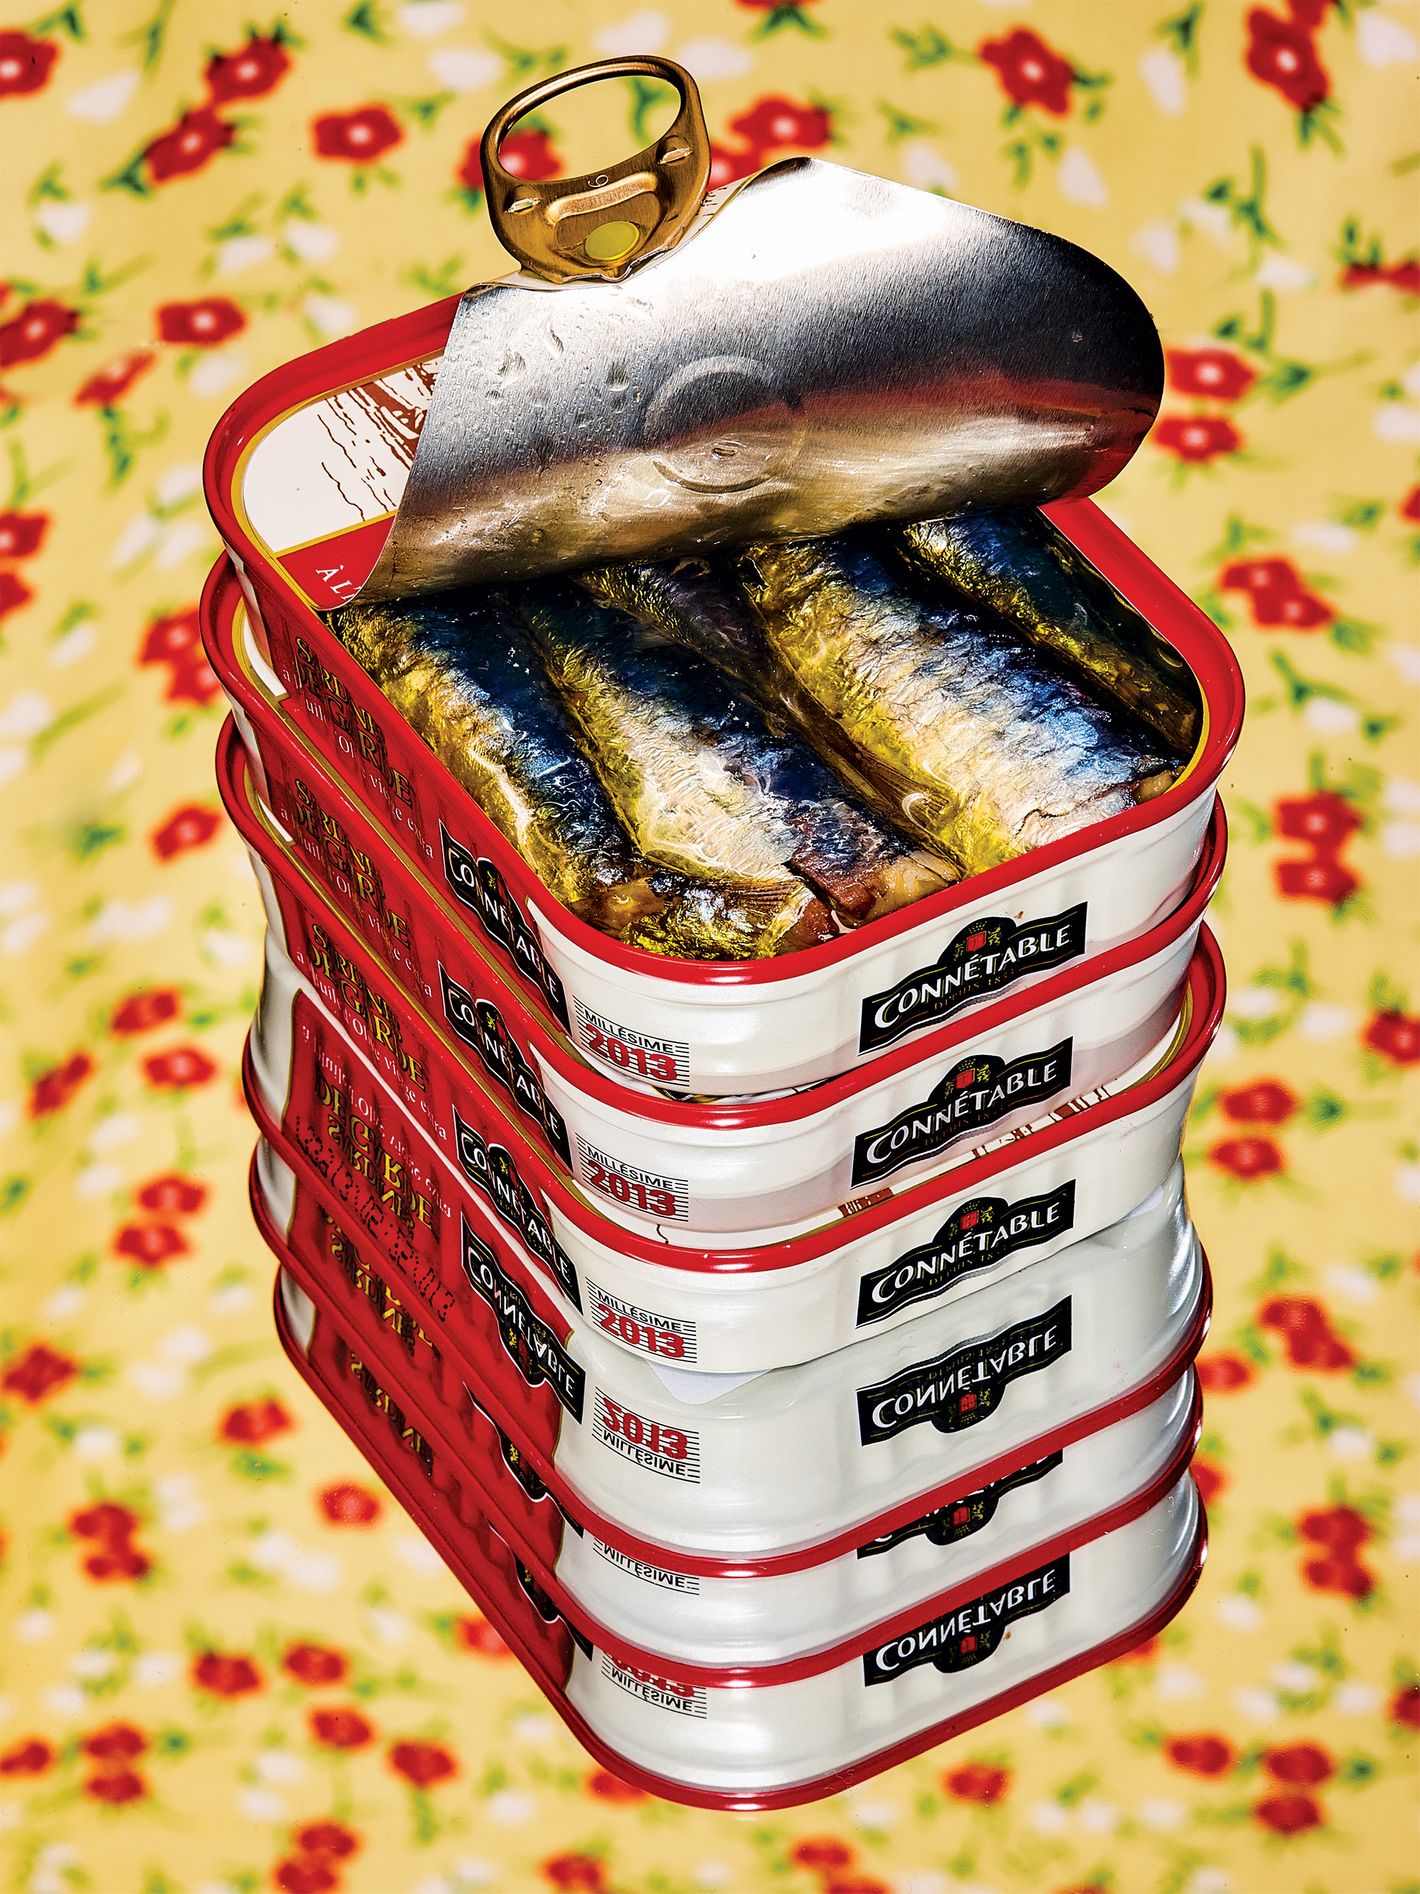 Connétable Sardines - 2013 Vintage